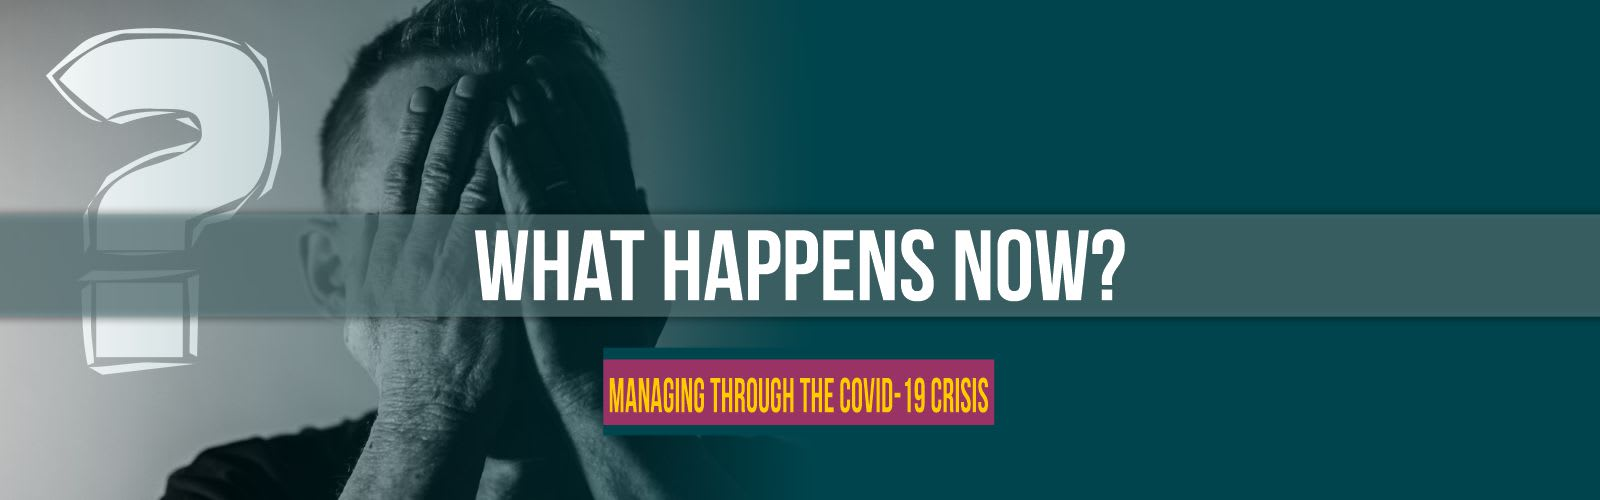 What happens now - covid-19 business